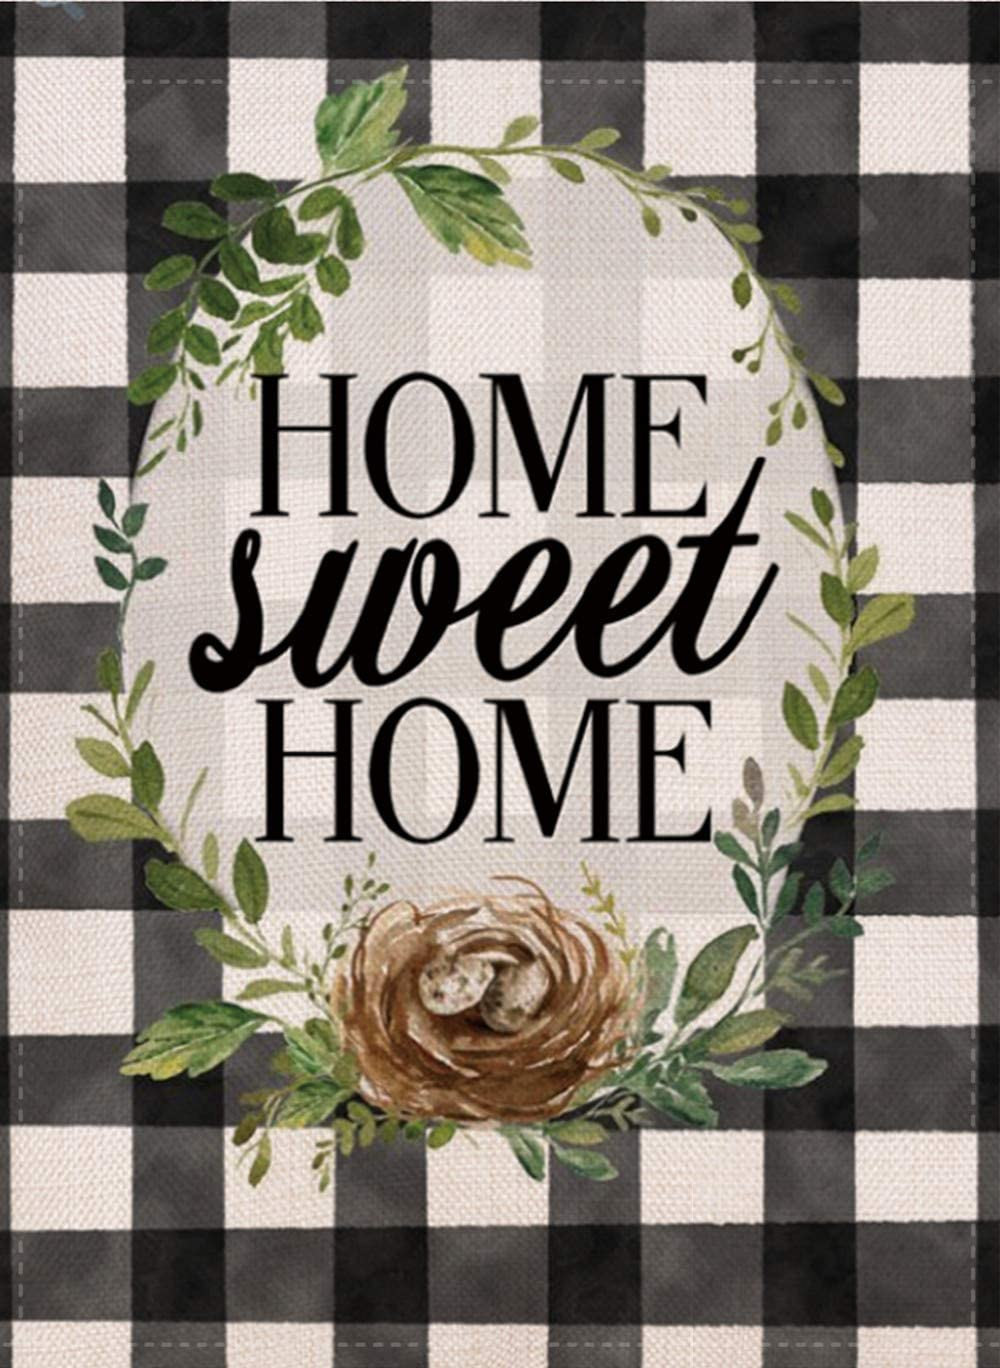 Furiaz Home Sweet Home Farmhouse Decorative Garden Flag, Fall Winter Buffalo Plaid Check Sign Outdoor Small Flag Black White Decor, Spring Summer Rustic House Yard Seasonal Outside Decoration 12 x 18